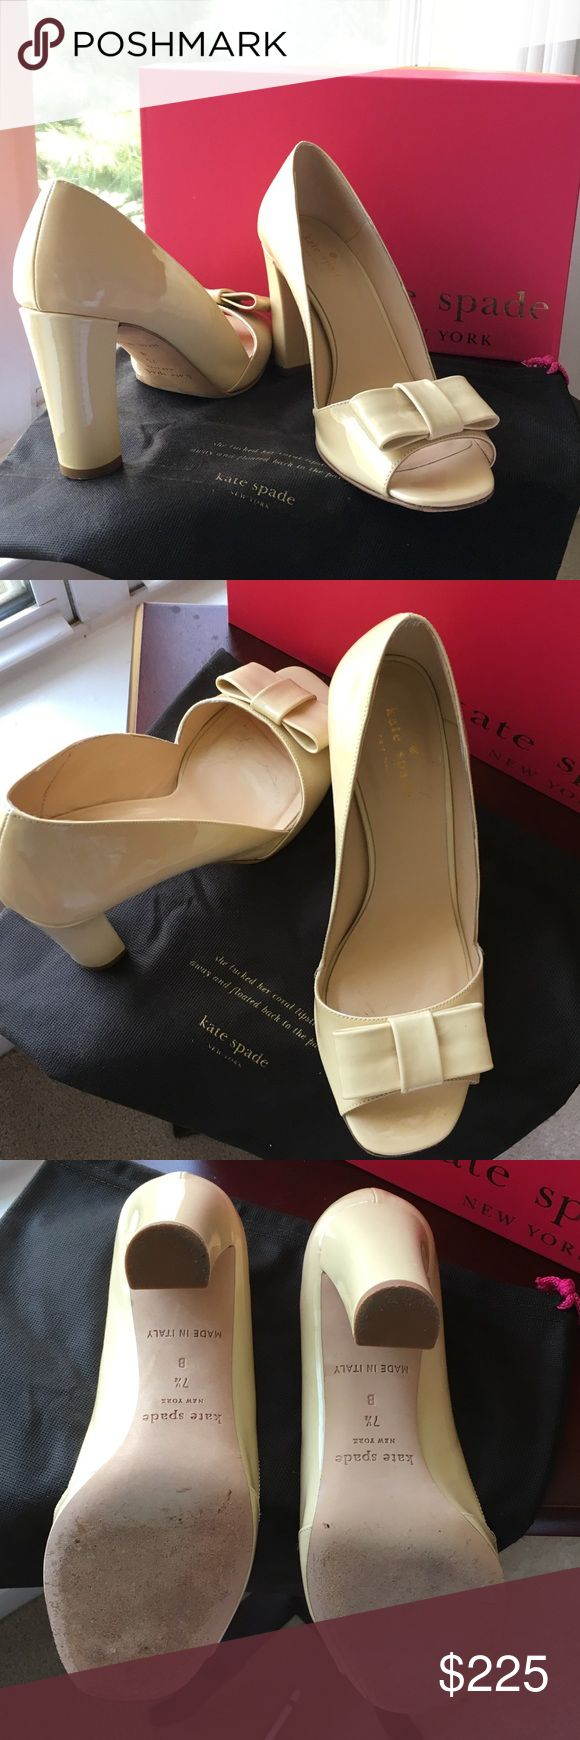 Kate Spade Cream Pumps Cream patent leather pumps with bow. Worn only once... I met my husband wearing these shoes and danced with him for hours!! ❤️ comes with dust bag and box. kate spade Shoes Heels